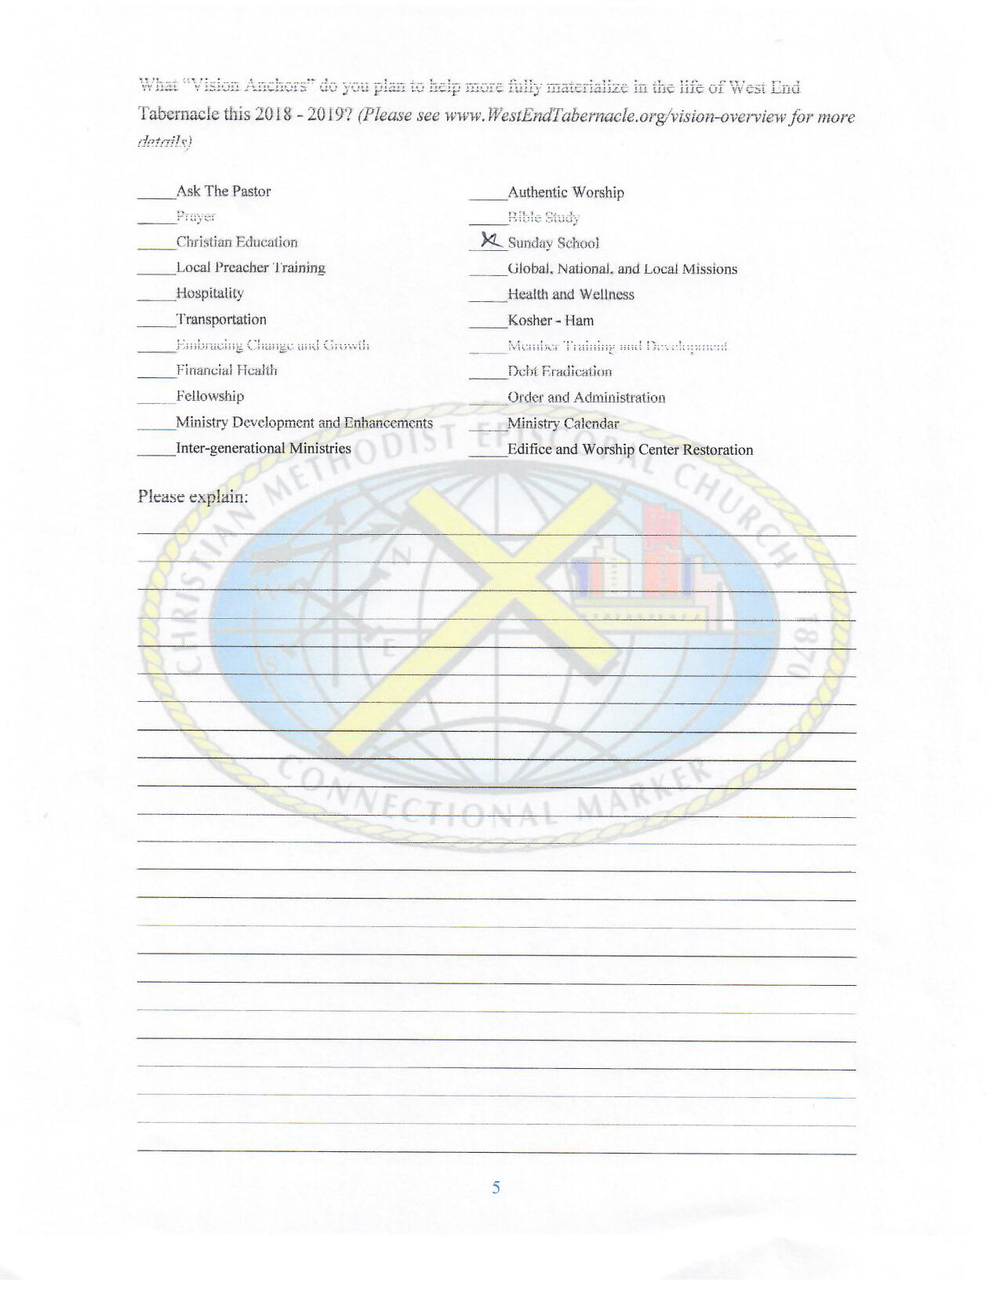 Kitchen Steward Planning Report_Page_5.png